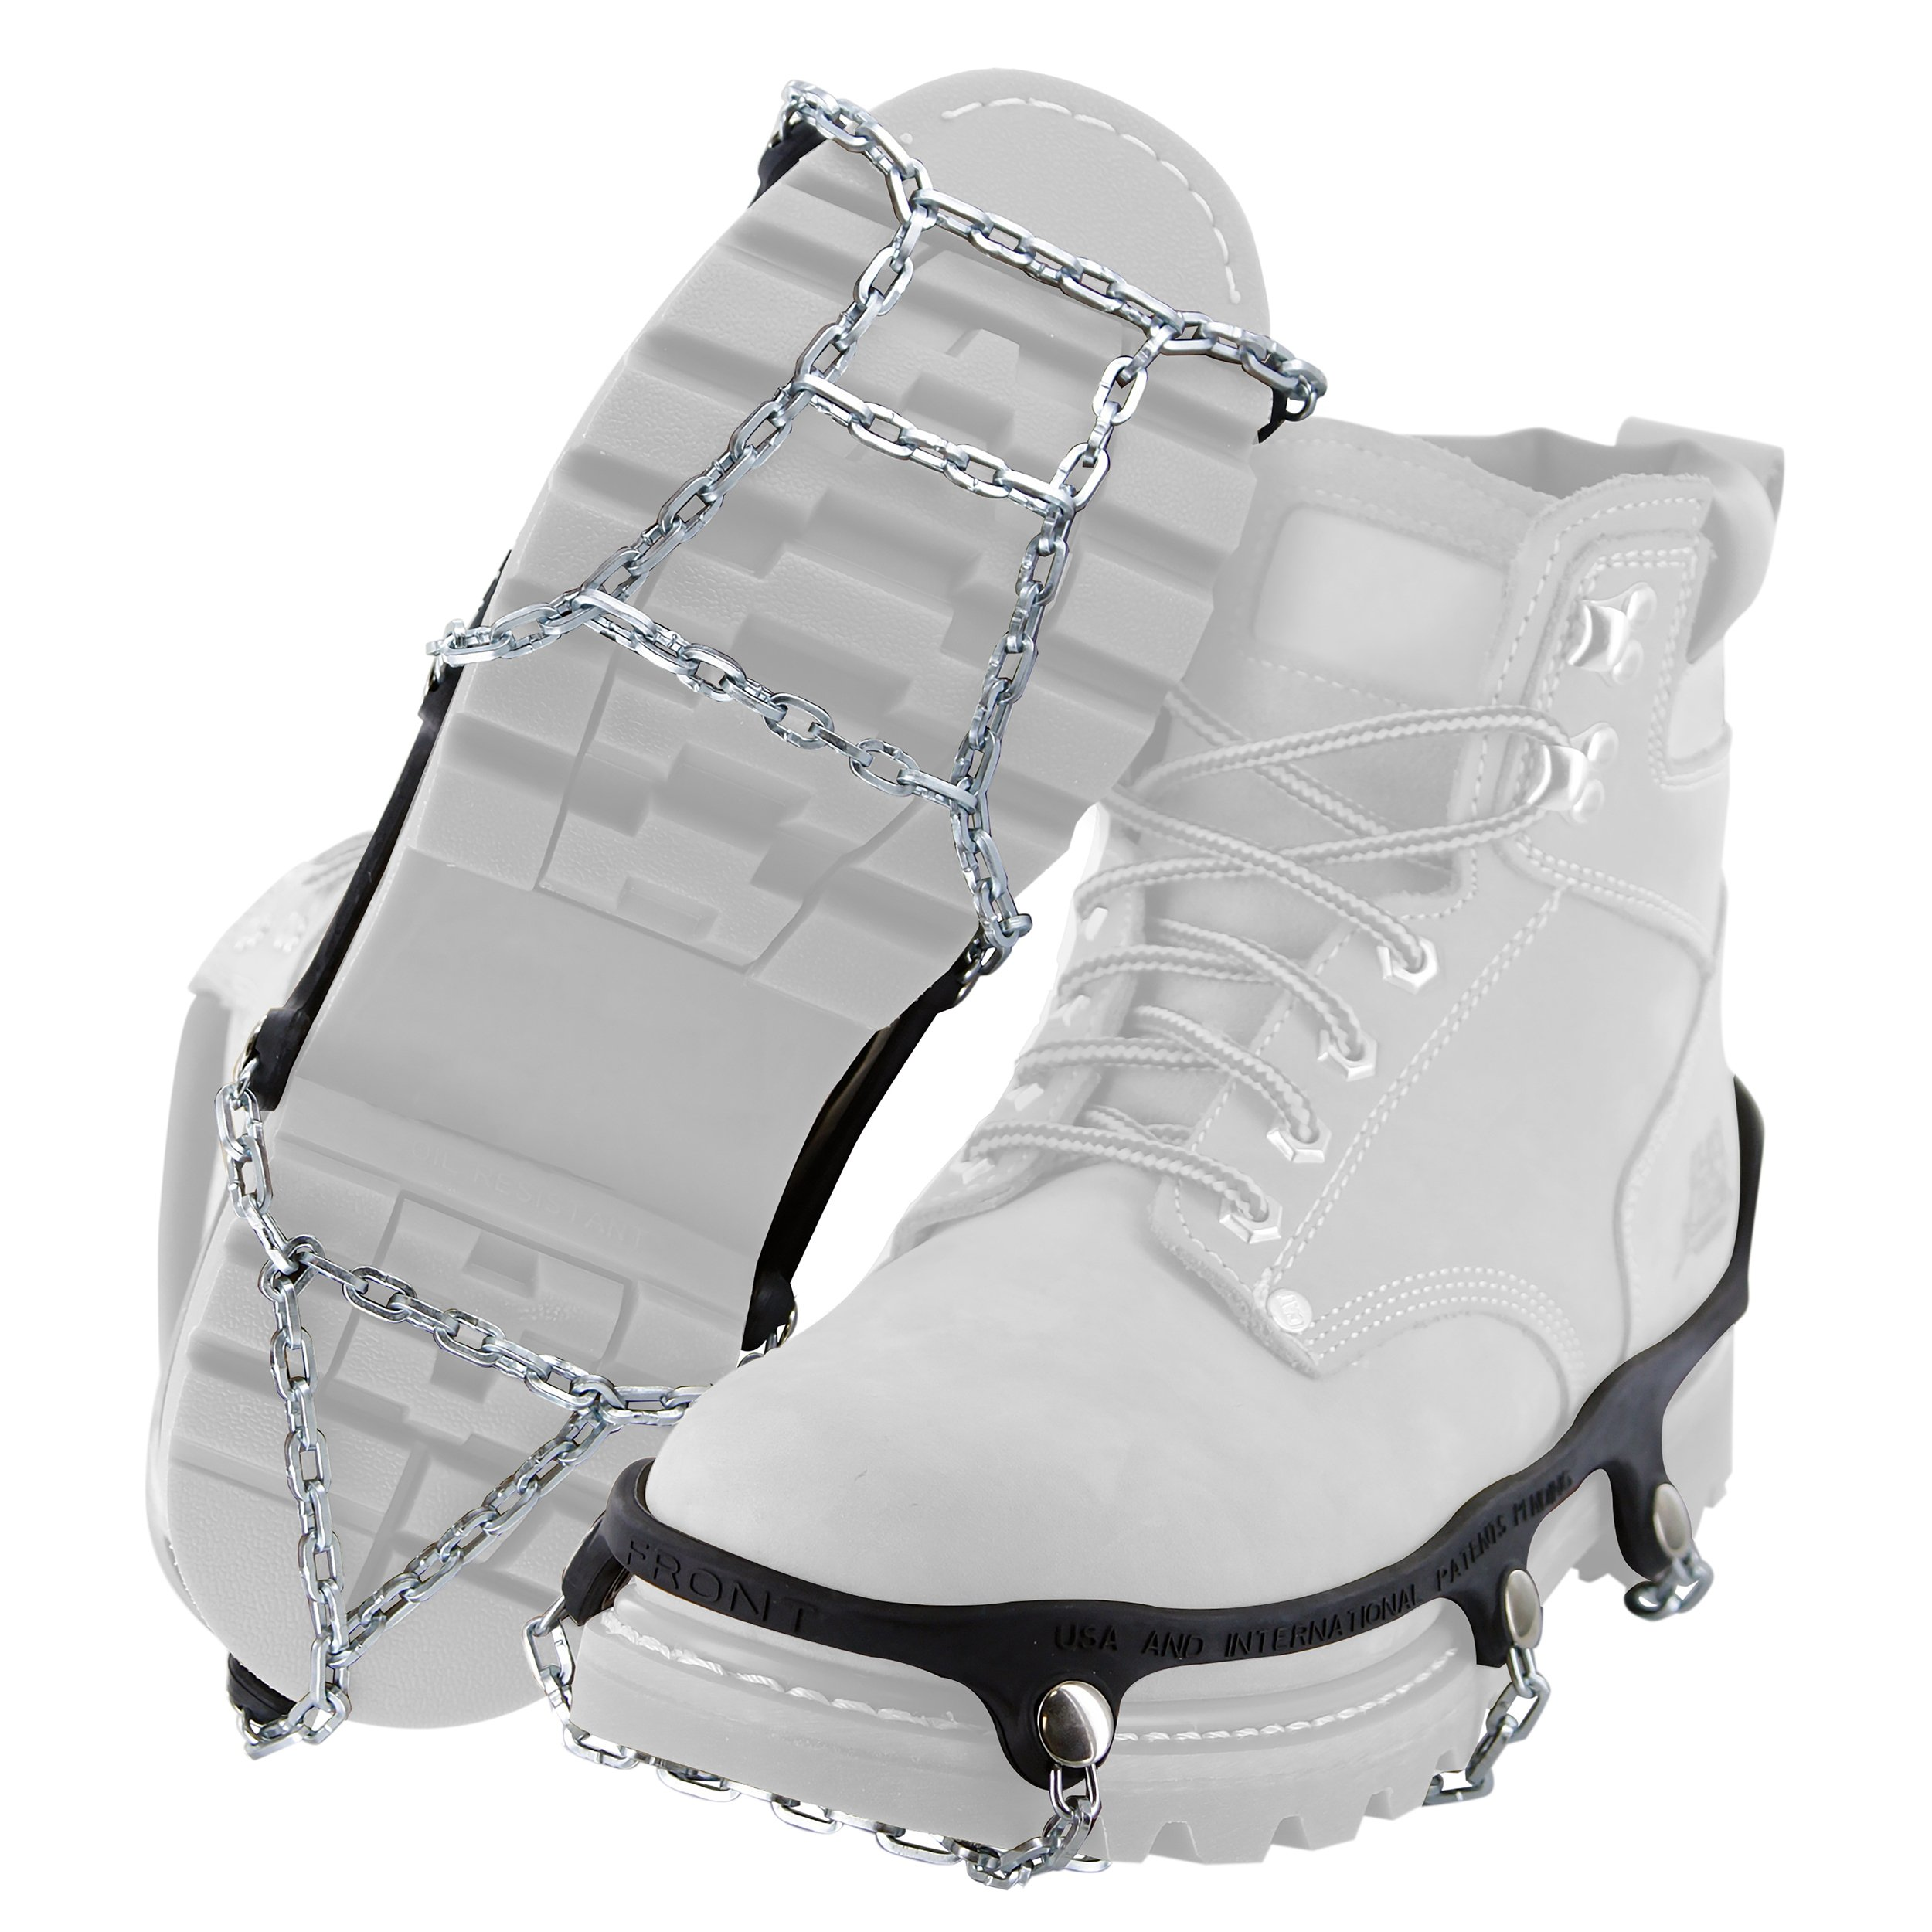 Yaktrax Traction Chains for Walking on Ice and Snow (1 Pair), Large by Yaktrax